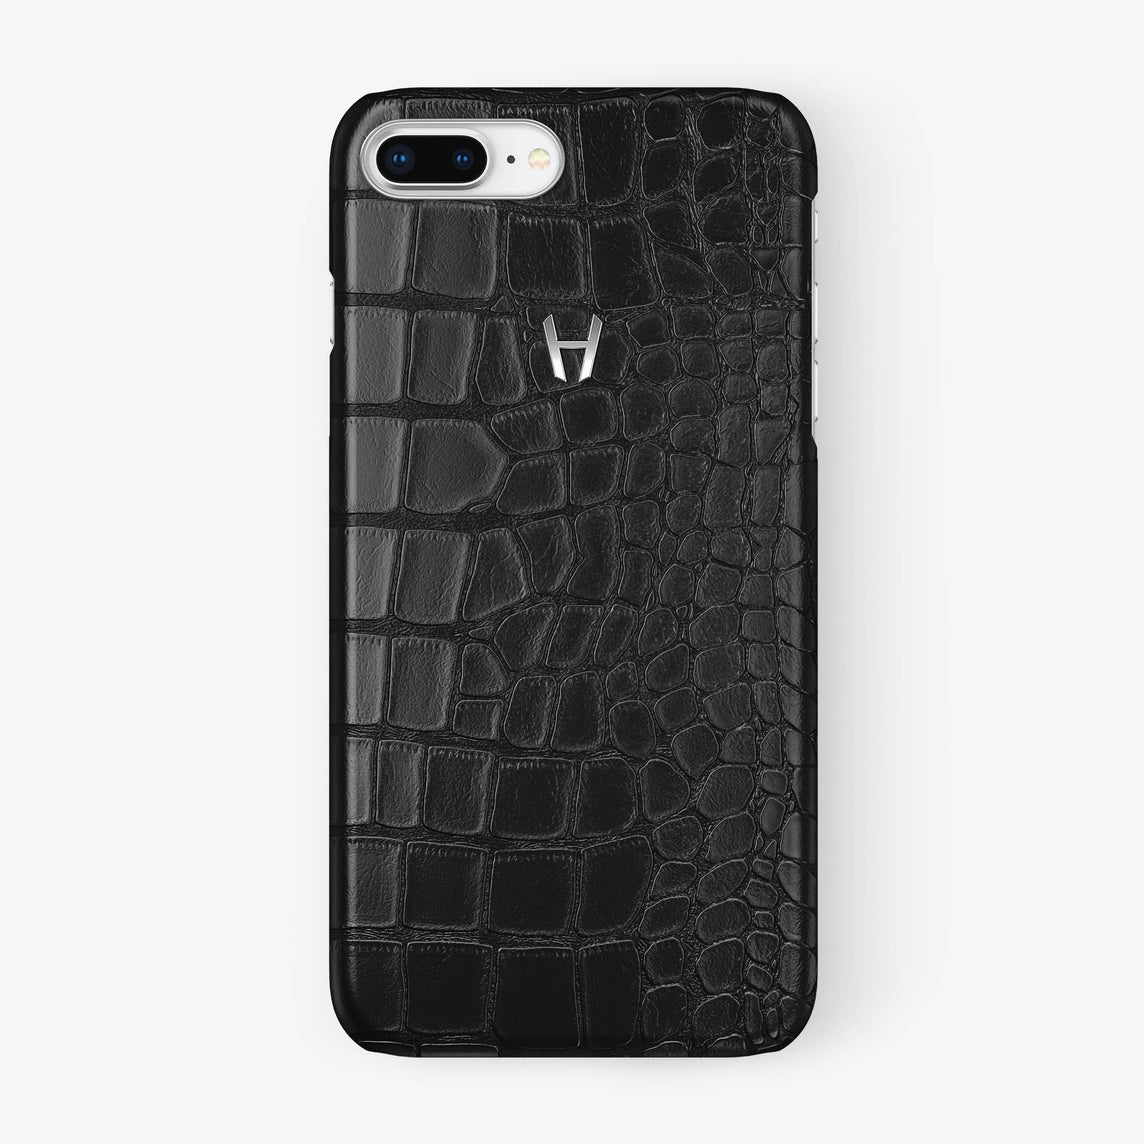 Alligator Case iPhone 7/8 Plus | Black - Stainless Steel